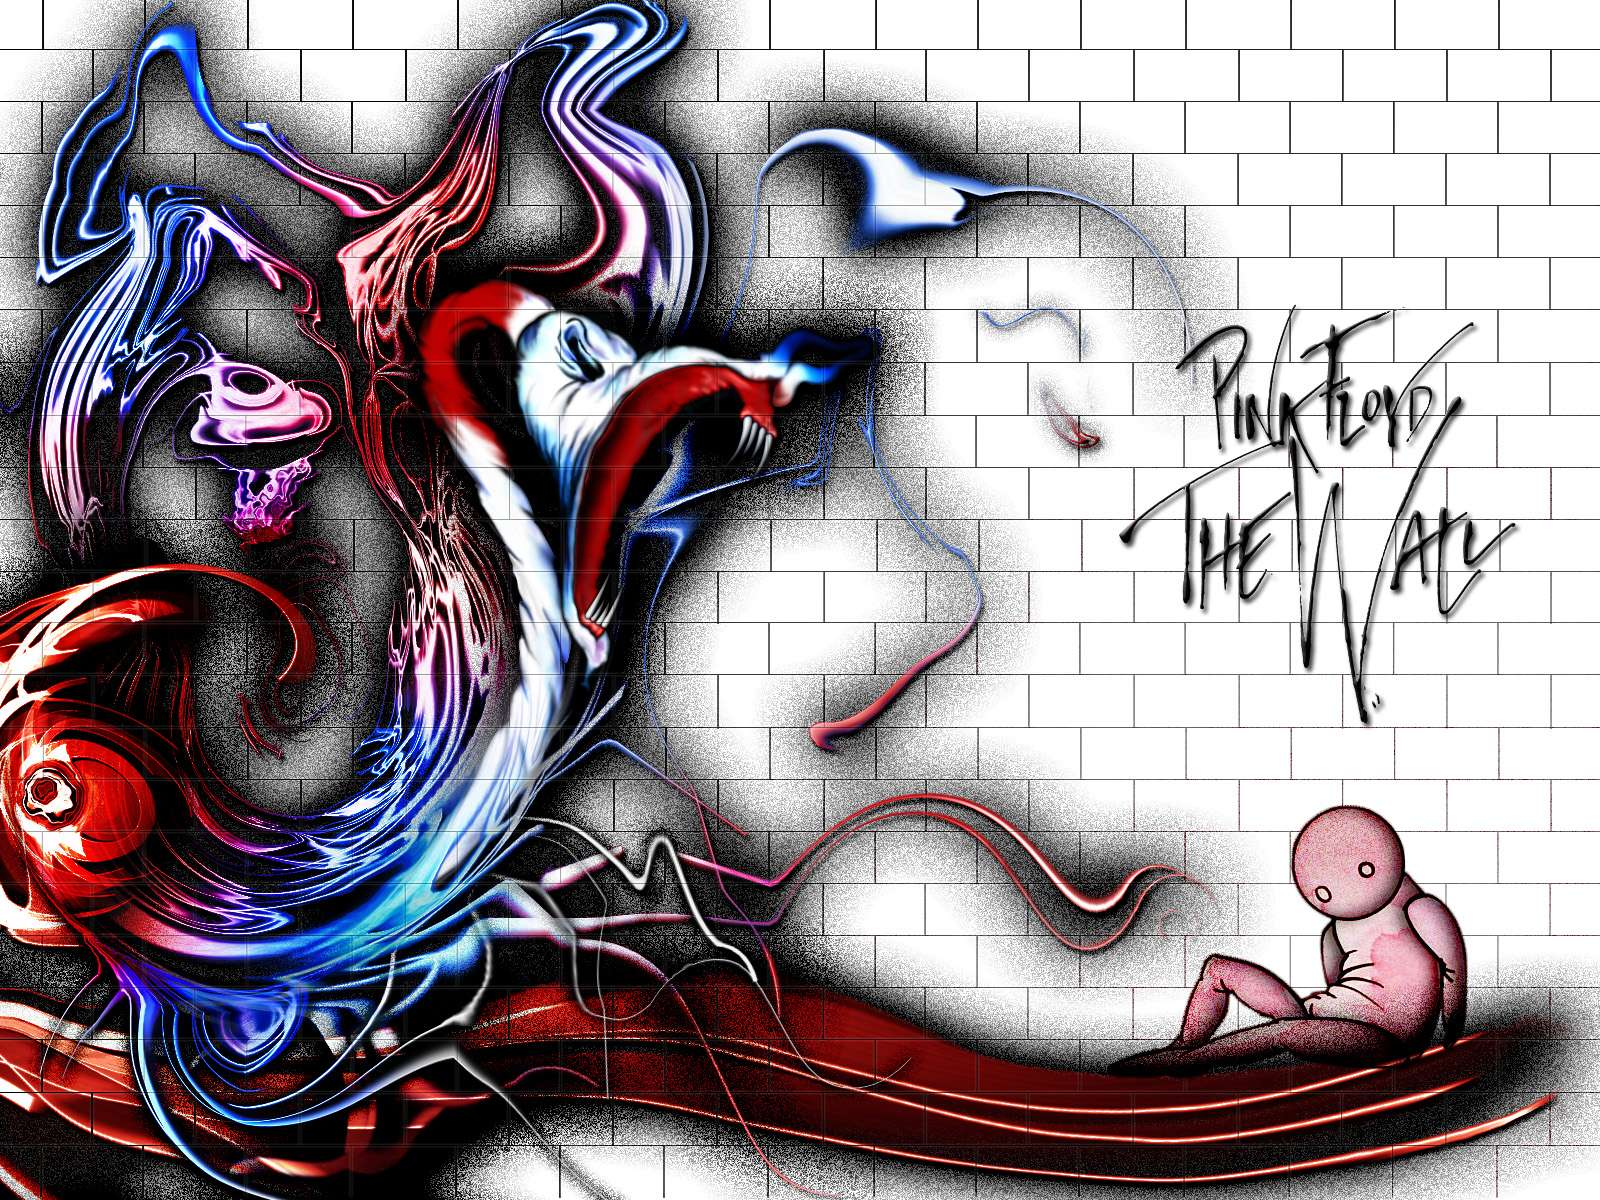 Pink Floyd -- The Wall